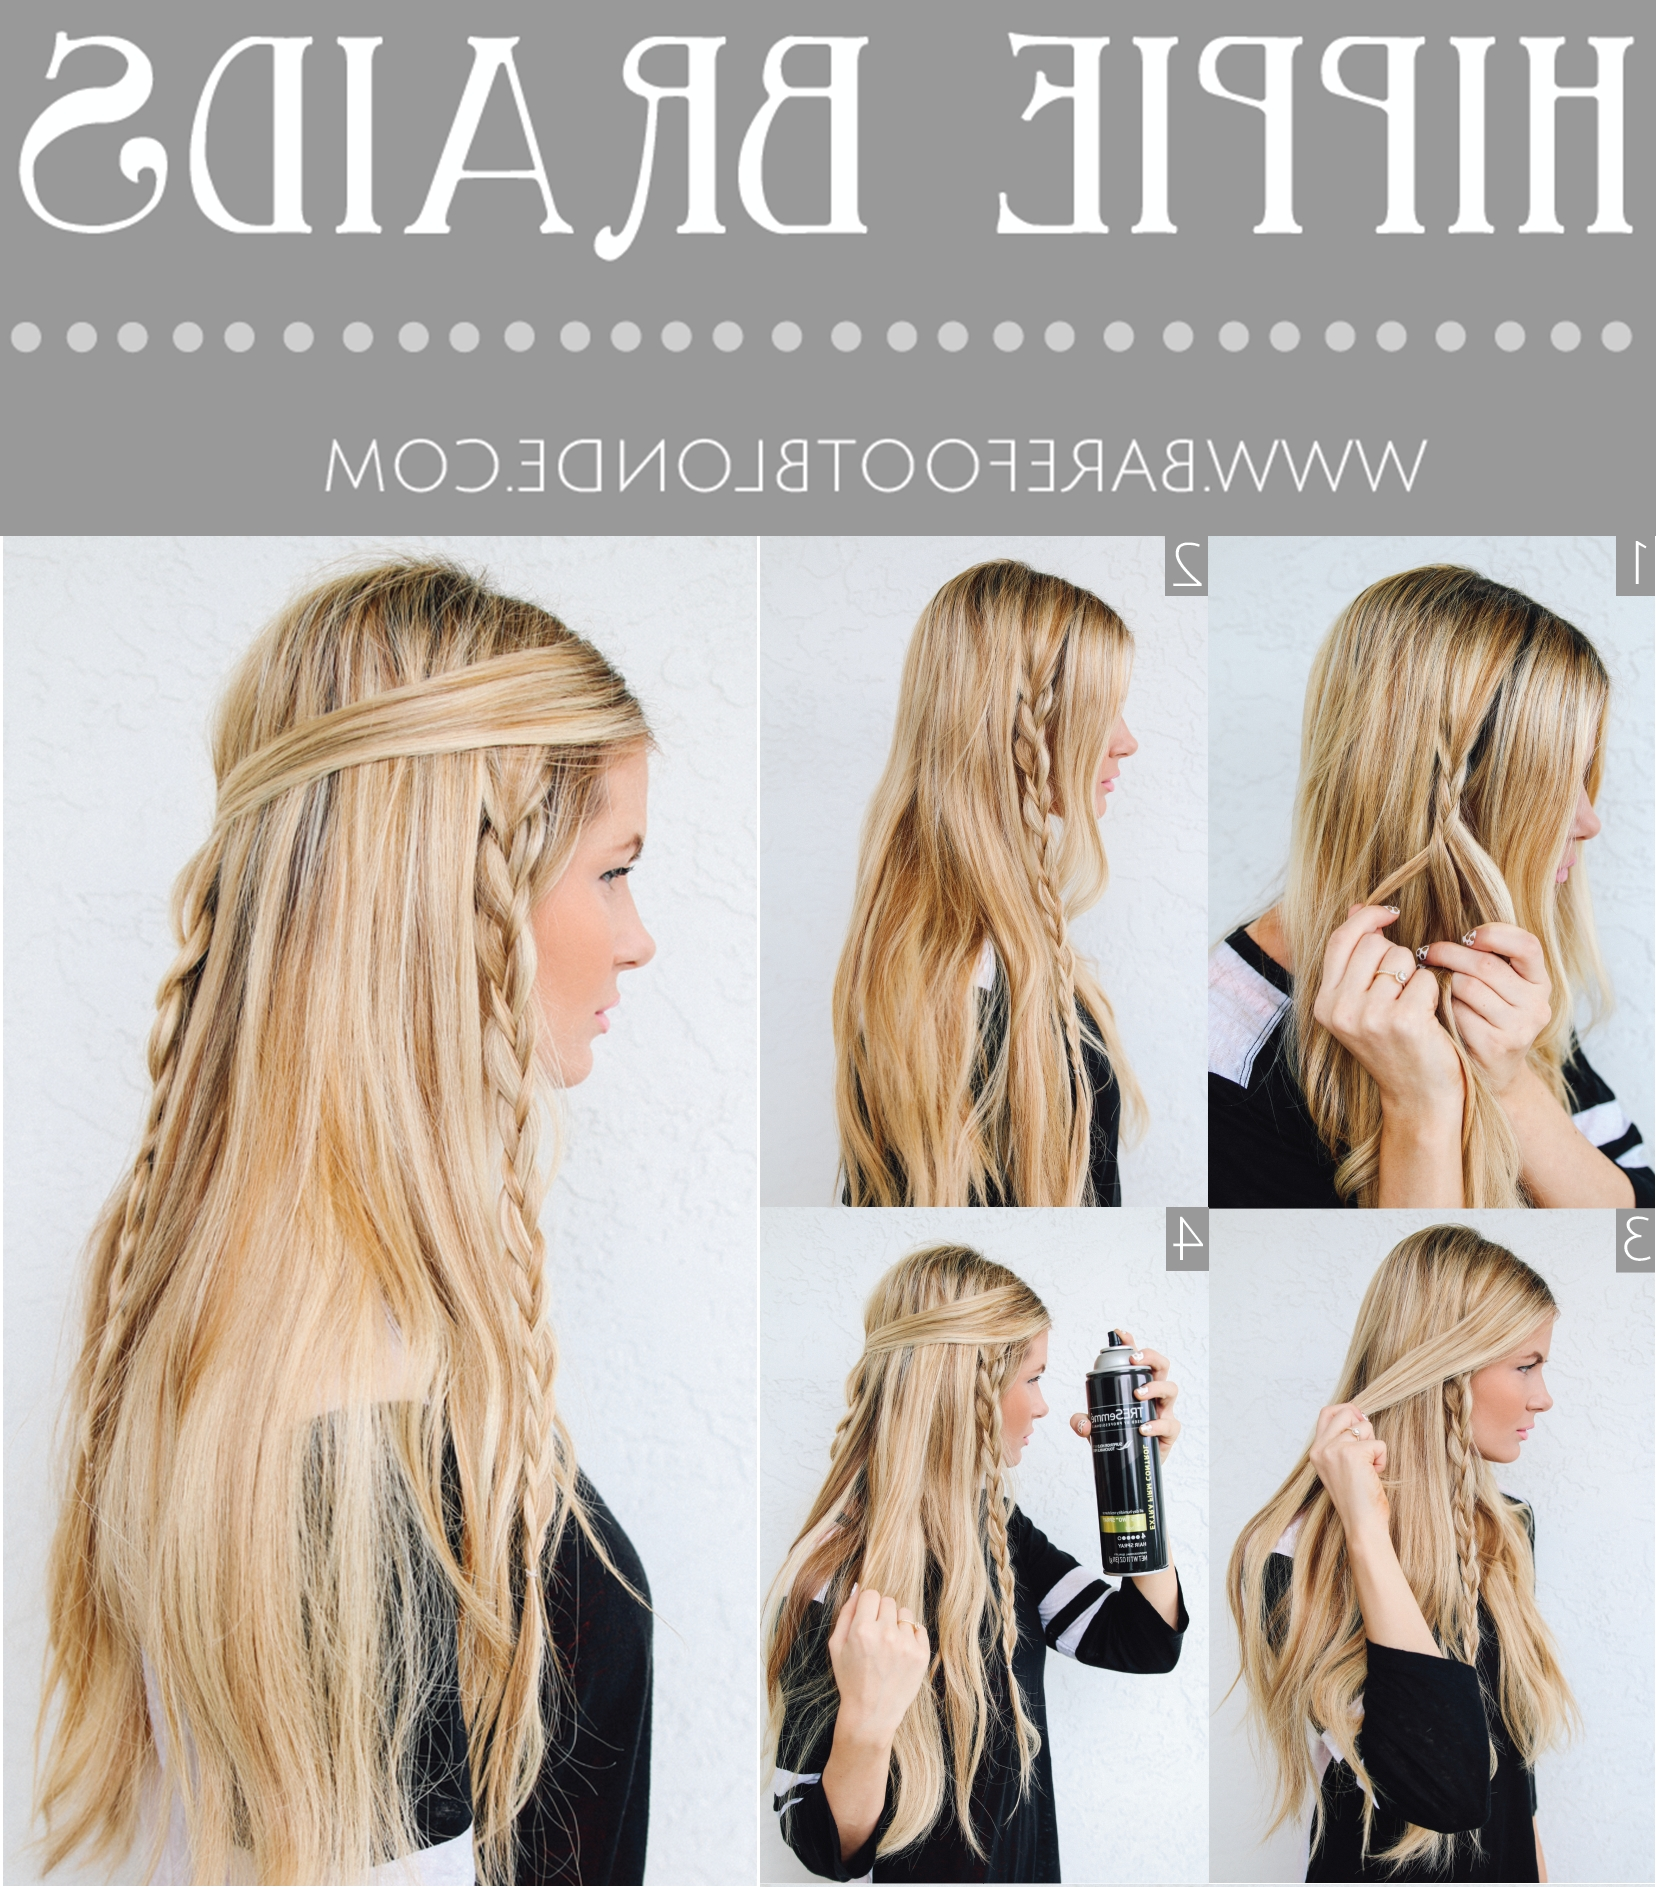 Easy Hippie Braids Hairstyle For School | Posehere In 2021 Hippie Hairstyles For Medium Length Hair